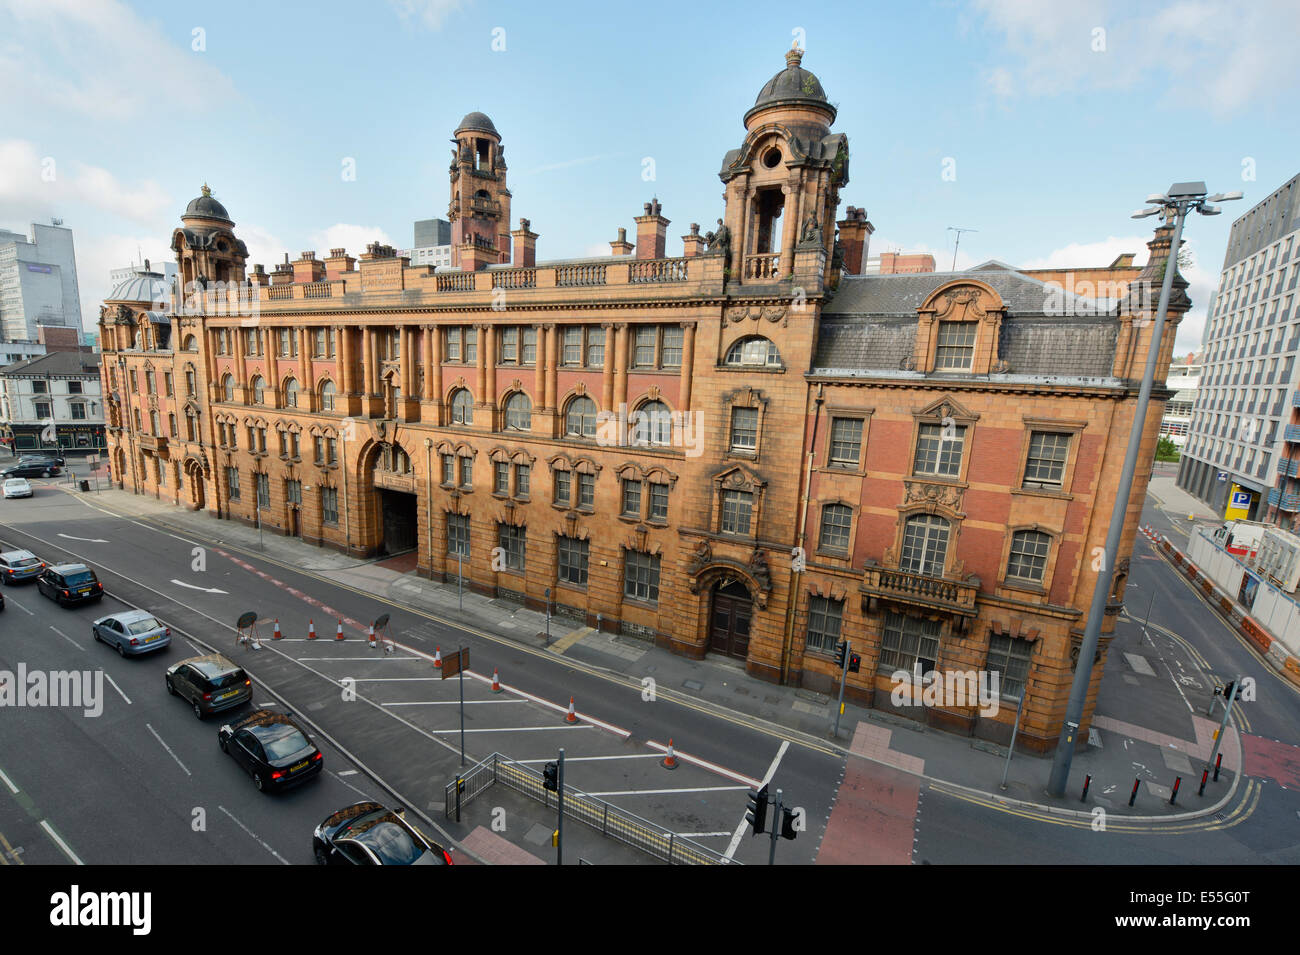 The vacant Edwardian baroque London Road Fire Station building located near to Piccadilly Rail Station in Manchester. - Stock Image